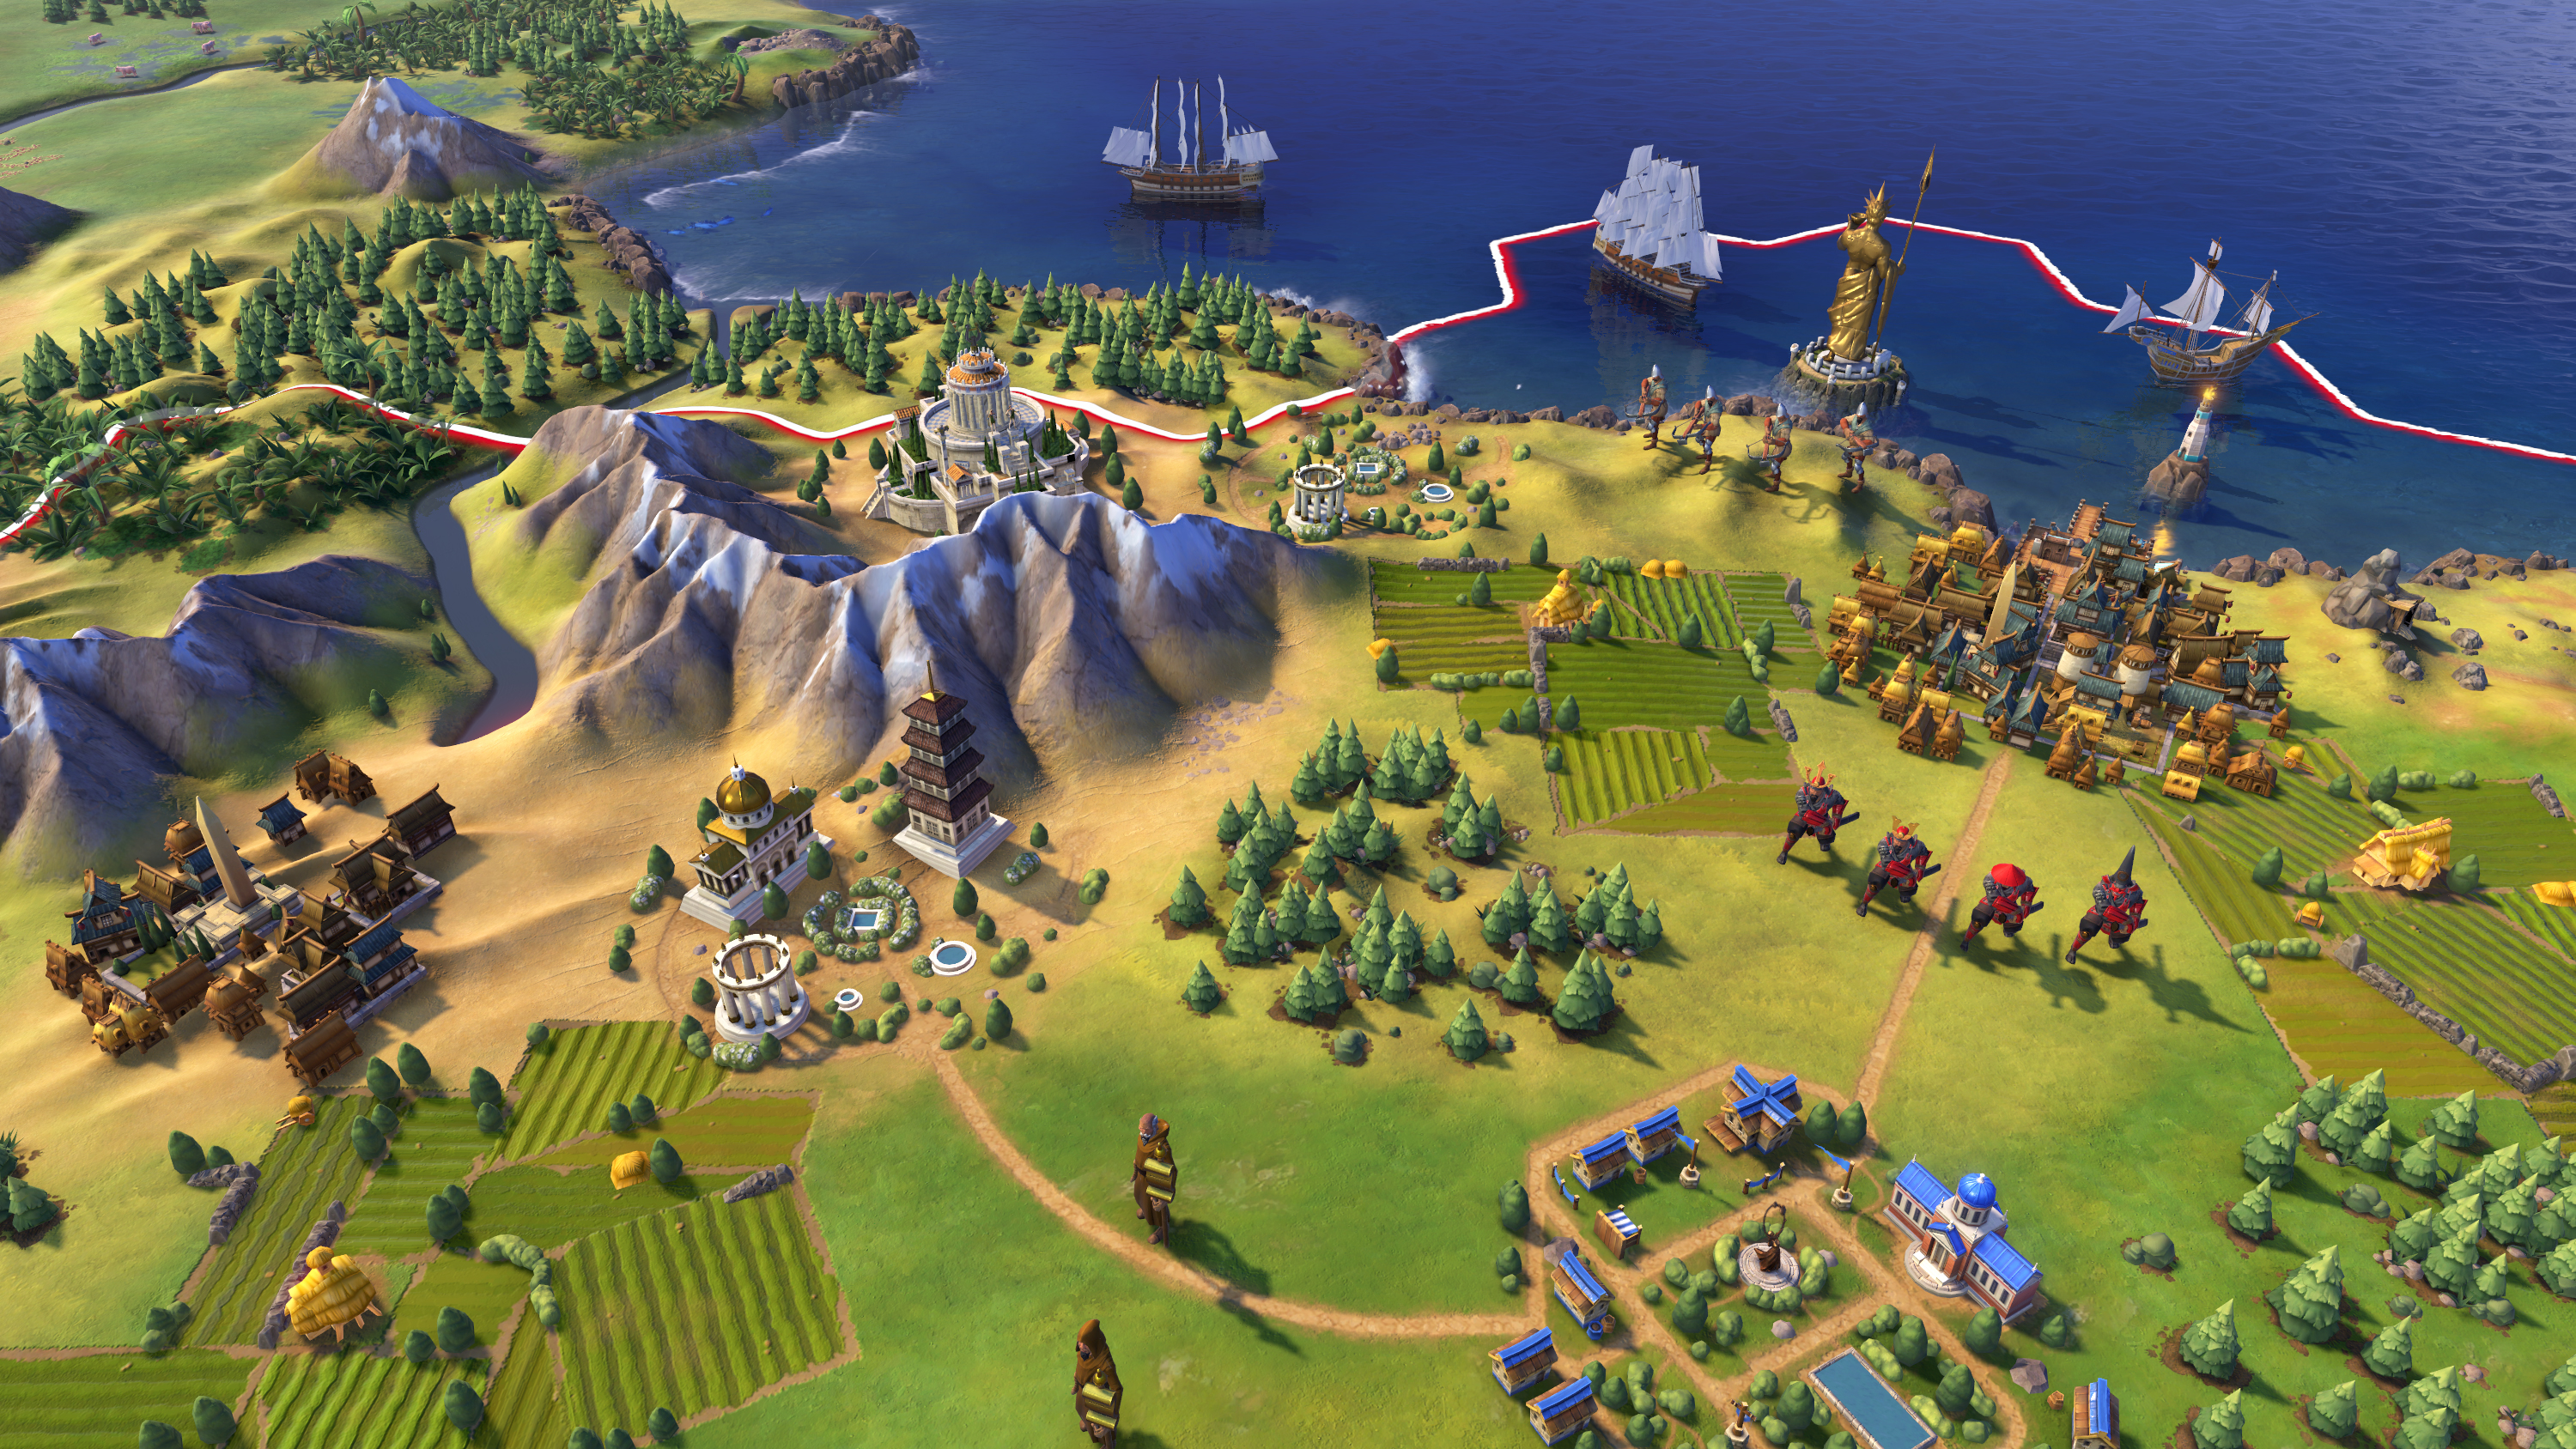 Civilization 6 makes big push into esports as major organization starts new team